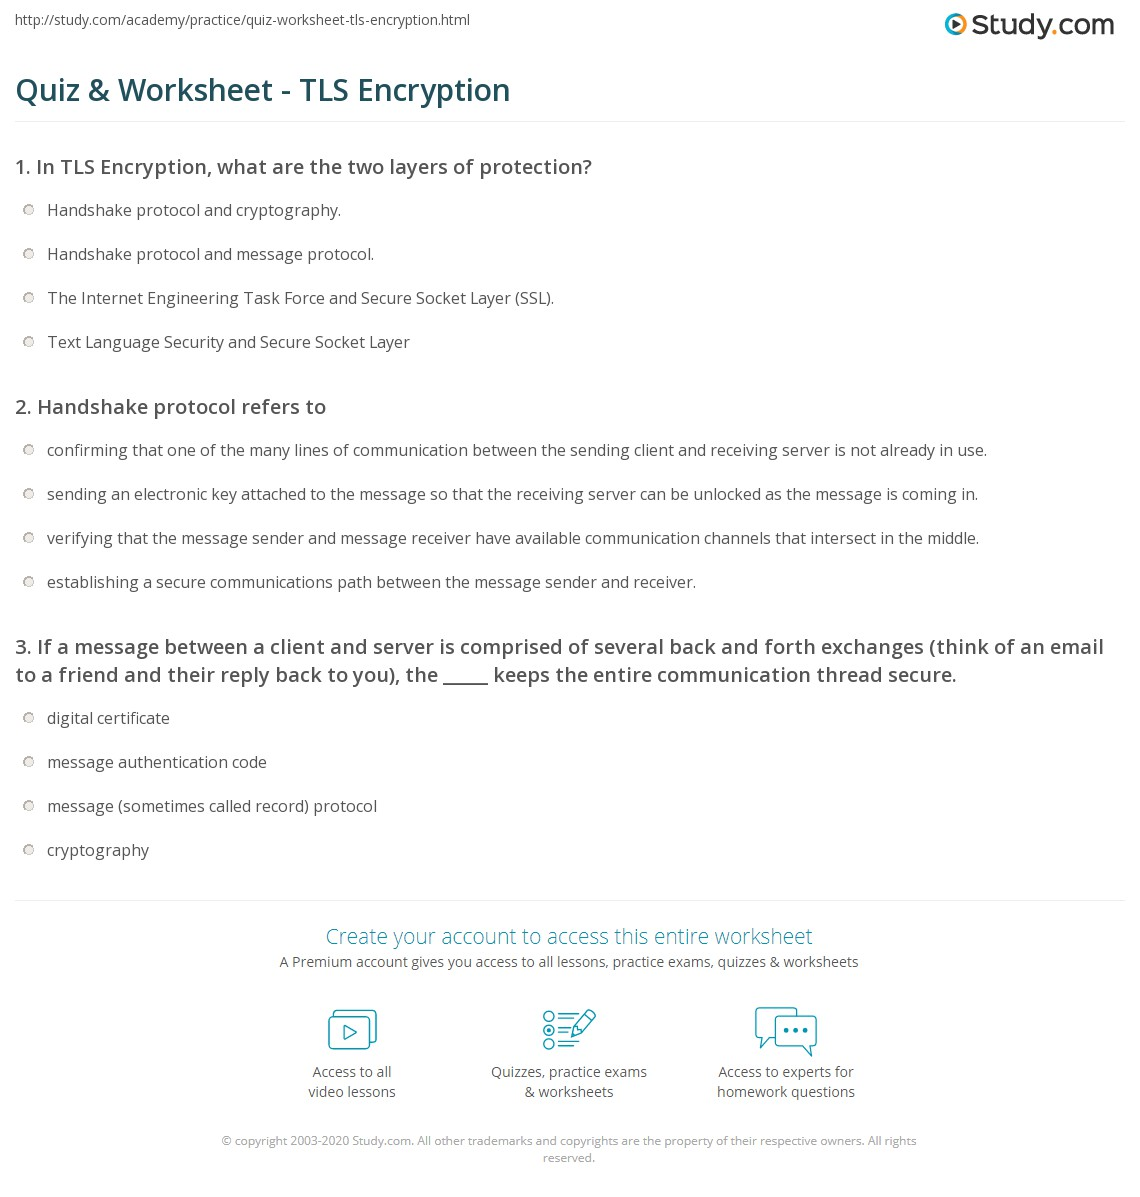 Quiz & Worksheet - TLS Encryption | Study.com